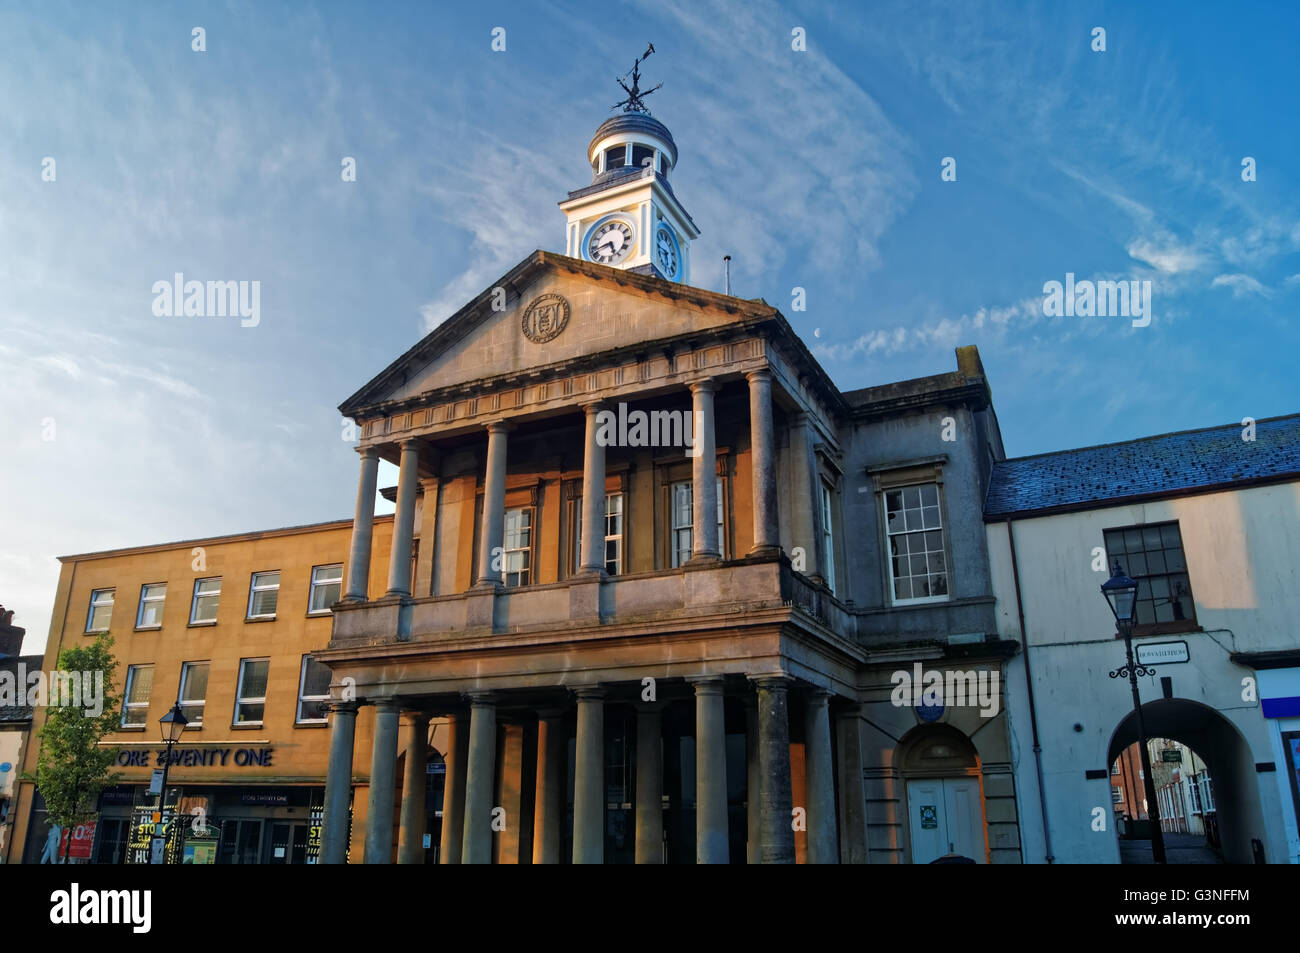 UK,Somerset,Chard,Fore Street,Guildhall - Stock Image